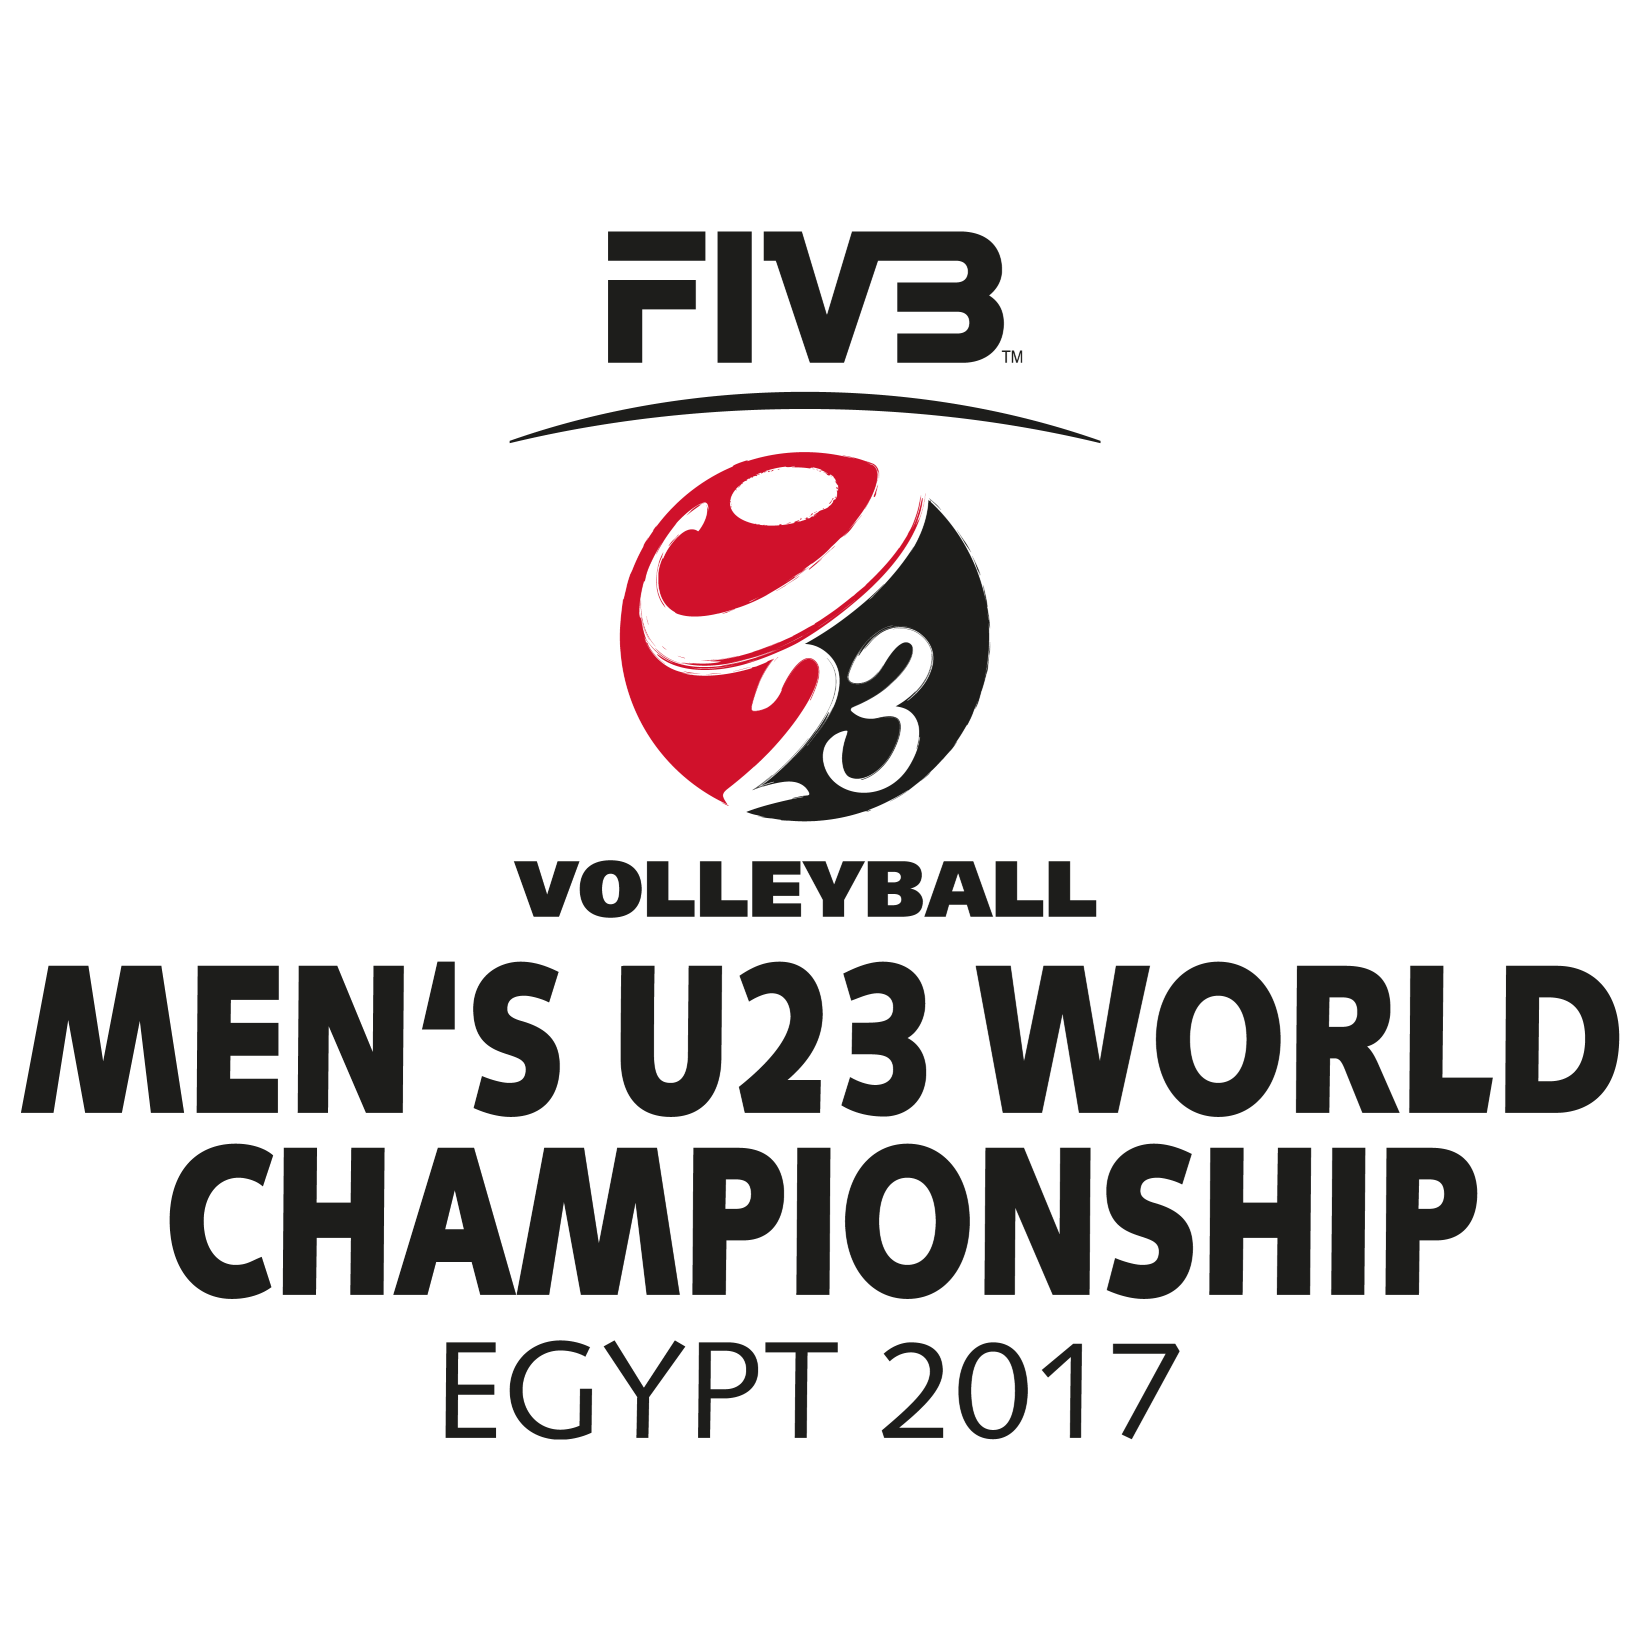 2017 FIVB Volleyball World U23 Men's Championship